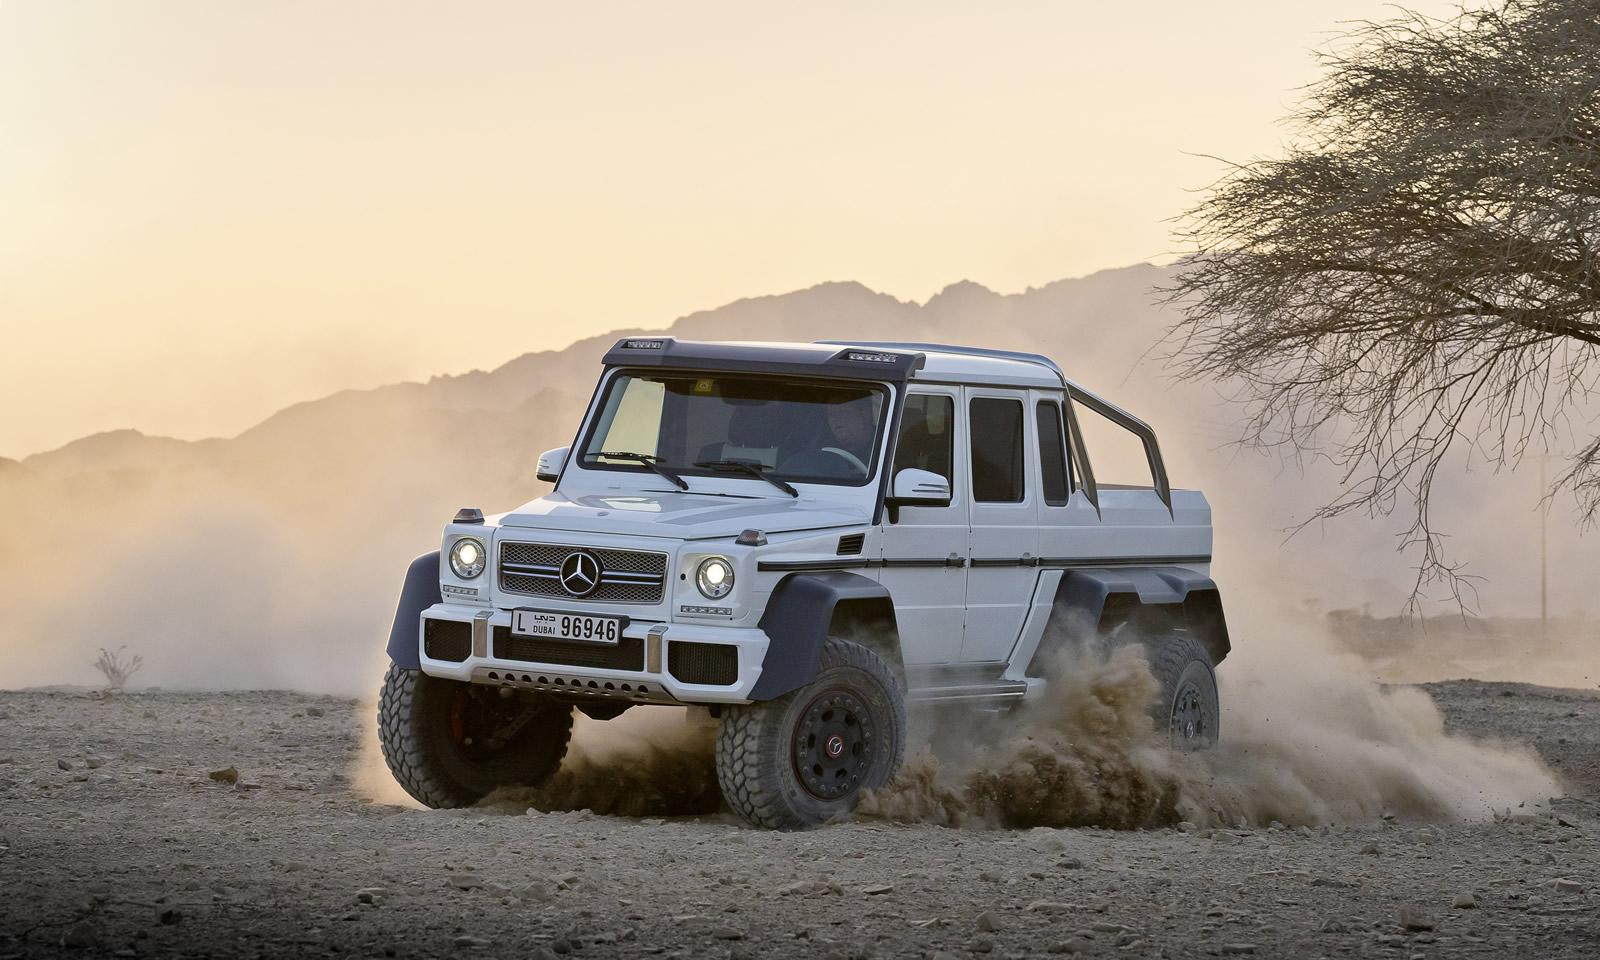 6x6 mercedes benz g63 amg pics aplenty autoevolution for G63 amg mercedes benz